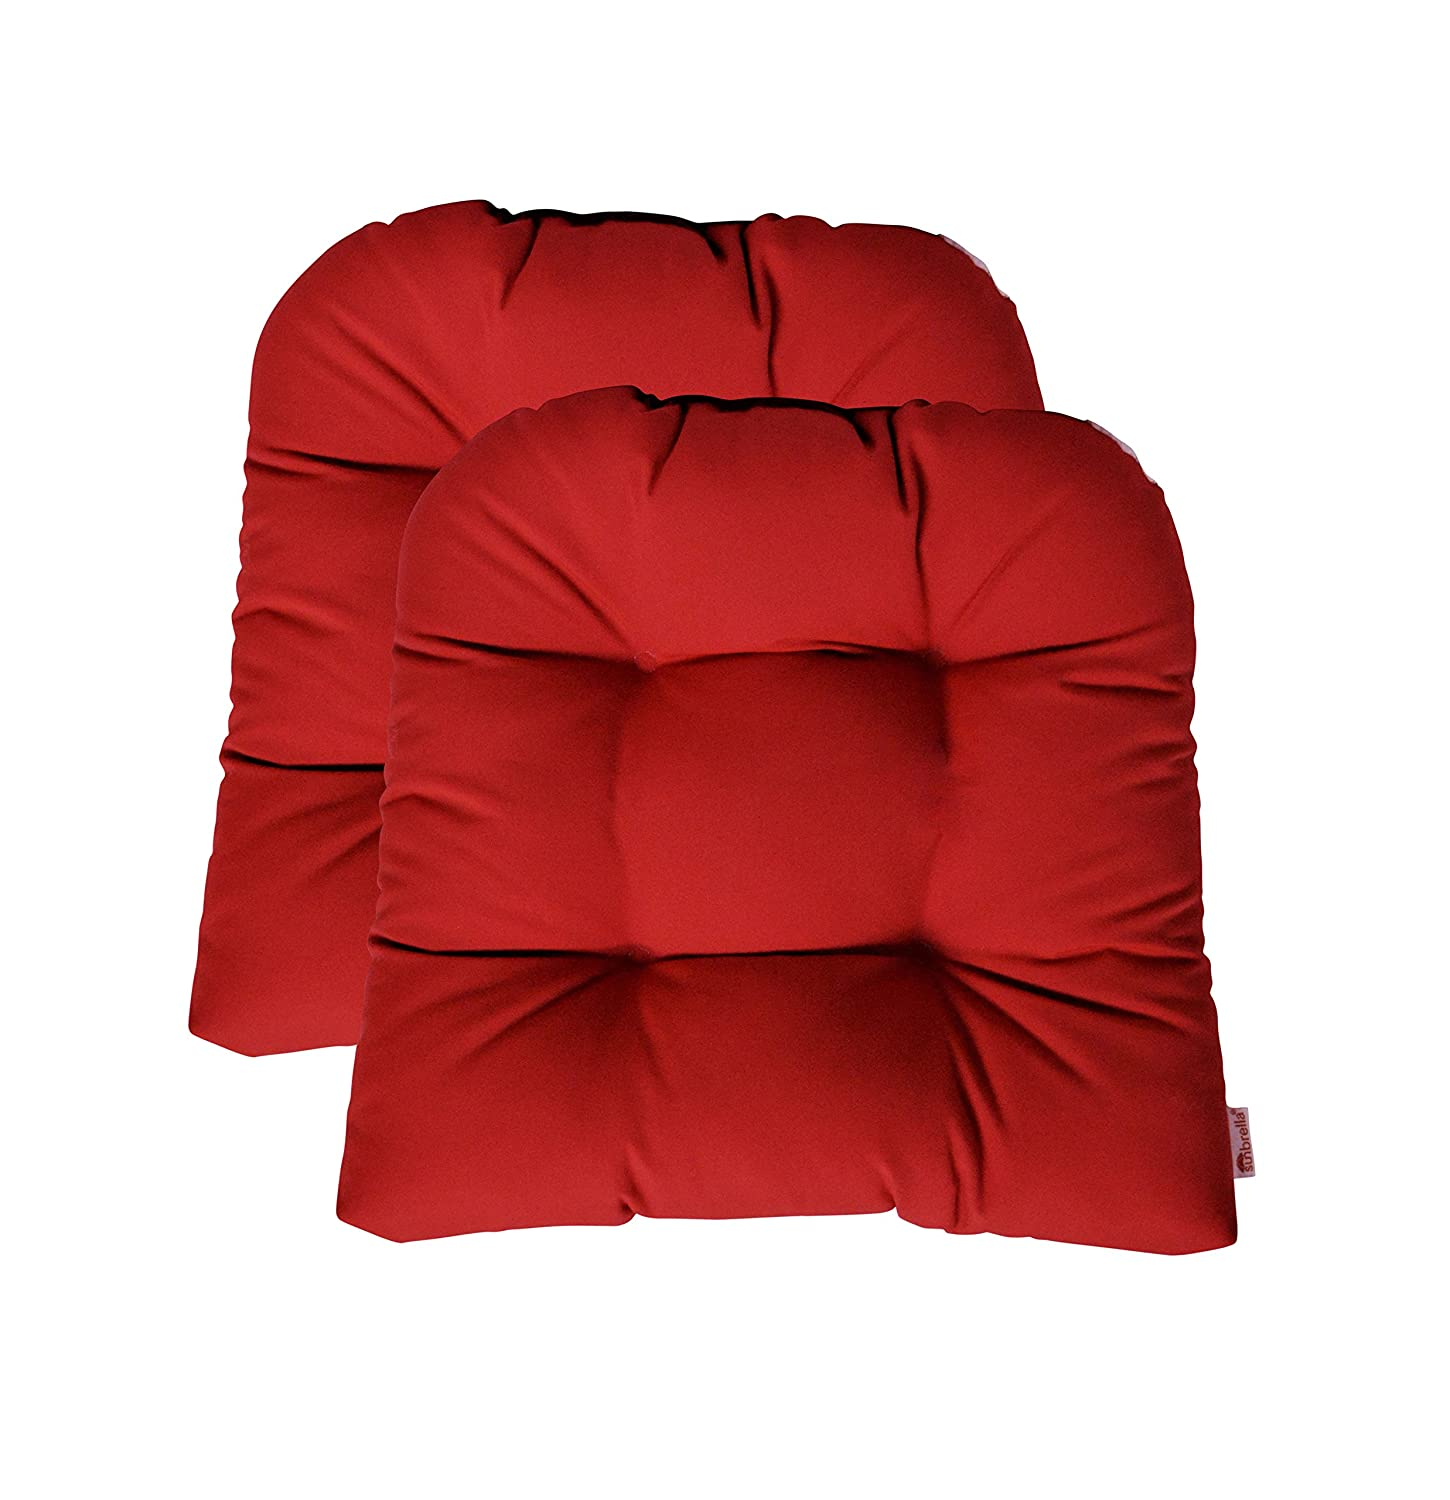 RSH Décor Indoor ~ Outdoor Sunbrella Tufted Wicker - Set of 2 ~ U-Shaped Chair Cushions ~ Choose Color (Canvas Jockey Red)